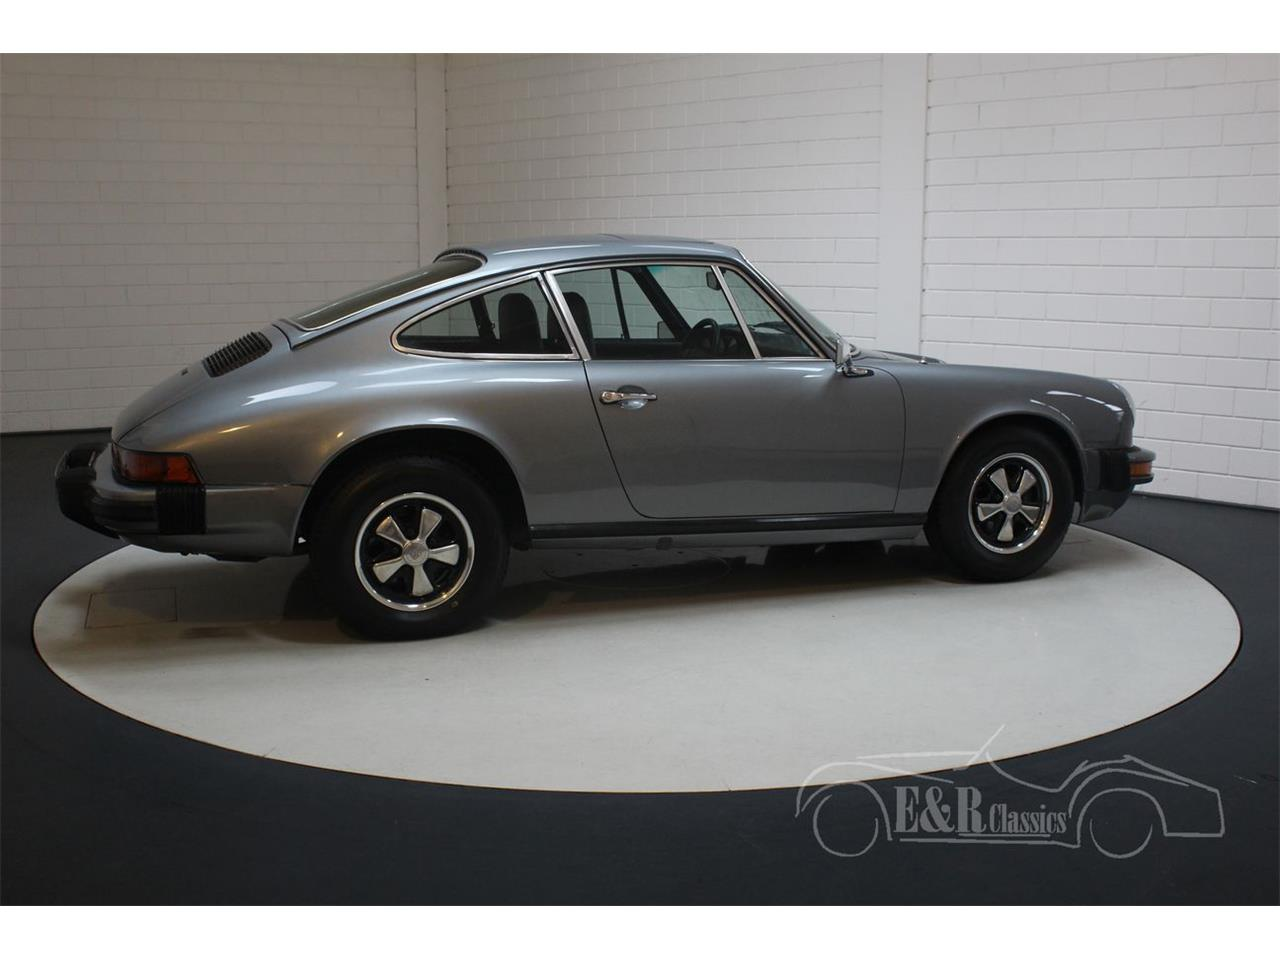 Large Picture of 1976 Porsche 912E located in Noord-Brabant - $44,700.00 - Q66S